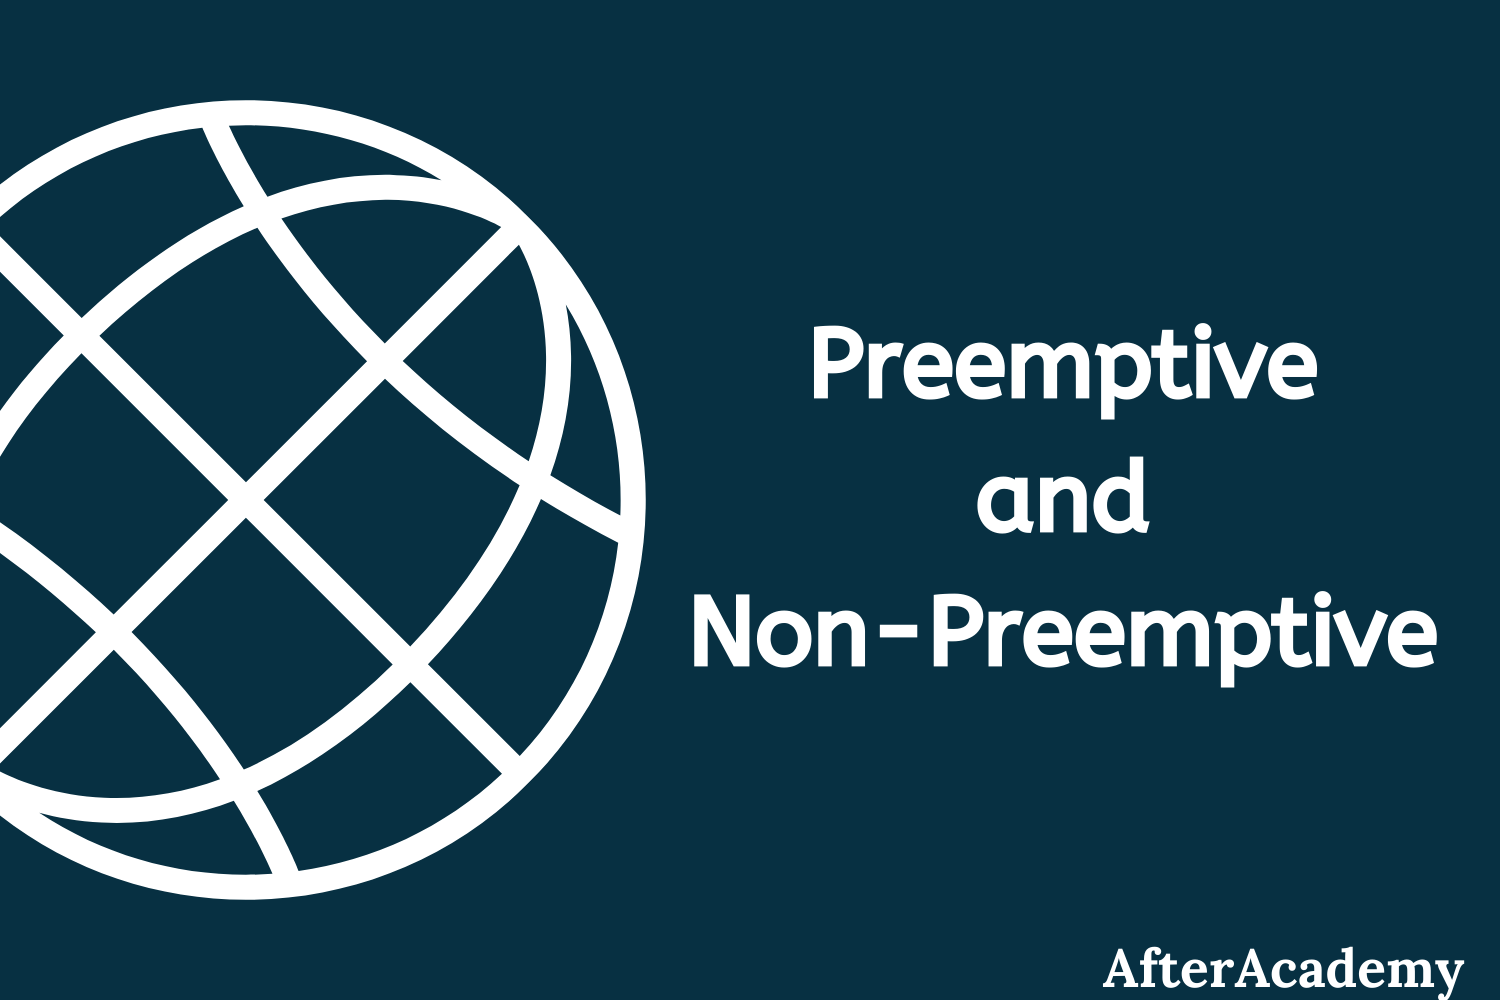 What is the difference between Preemptive and Non-Preemptive scheduling?